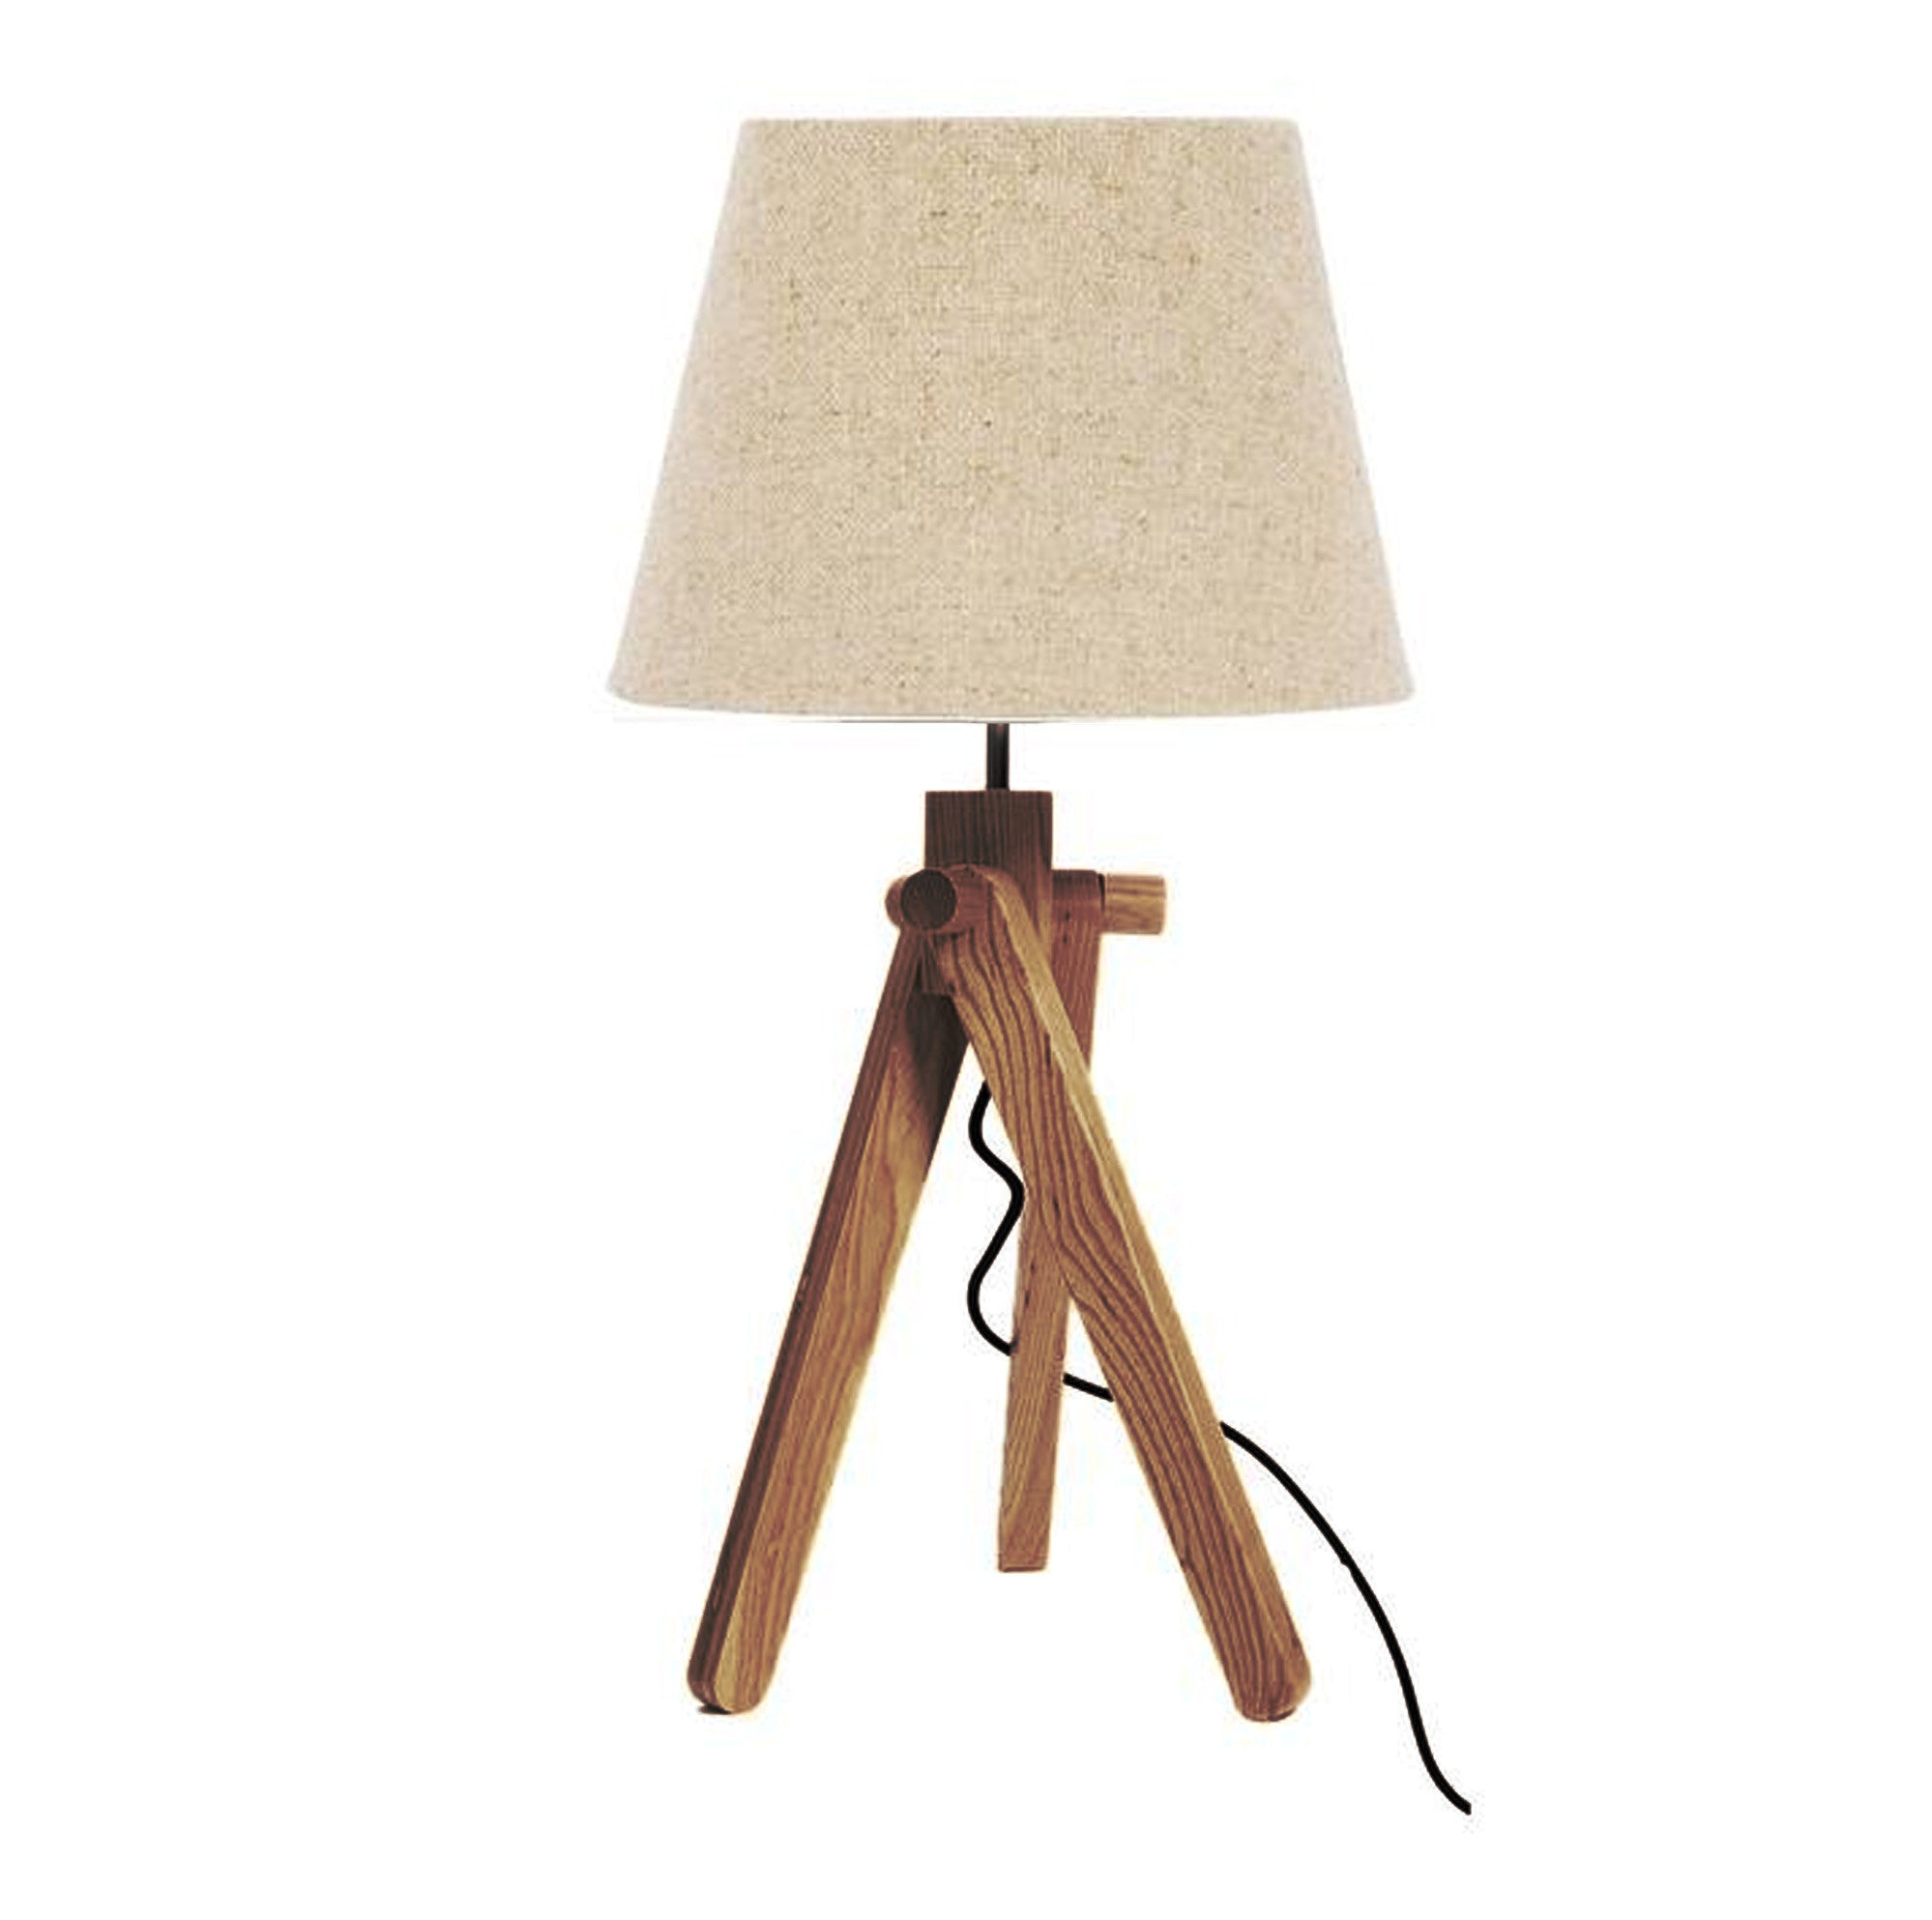 Trio solid wood table lamp BPTD056-W - ebarza